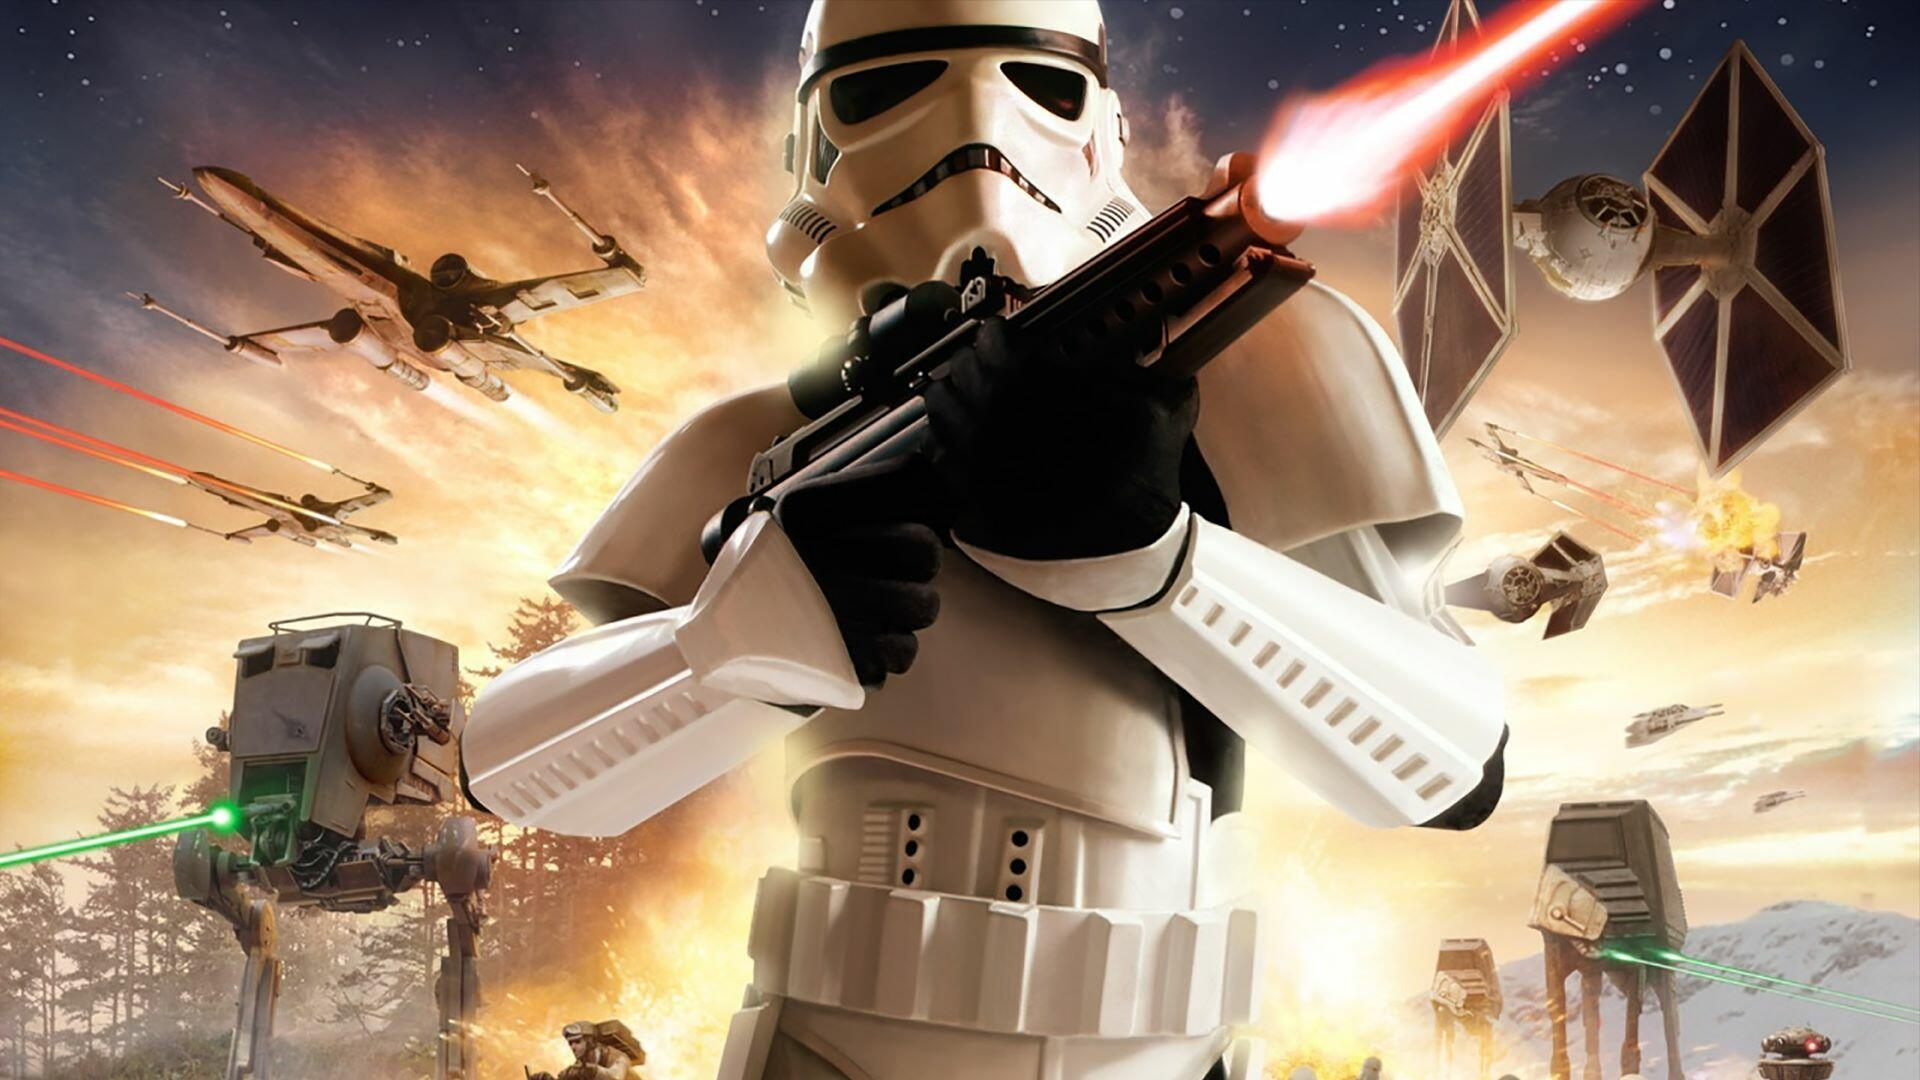 Star Wars: Battlefront's Re-Release Reminds Me of What EA's Battlefront Games Are Missing